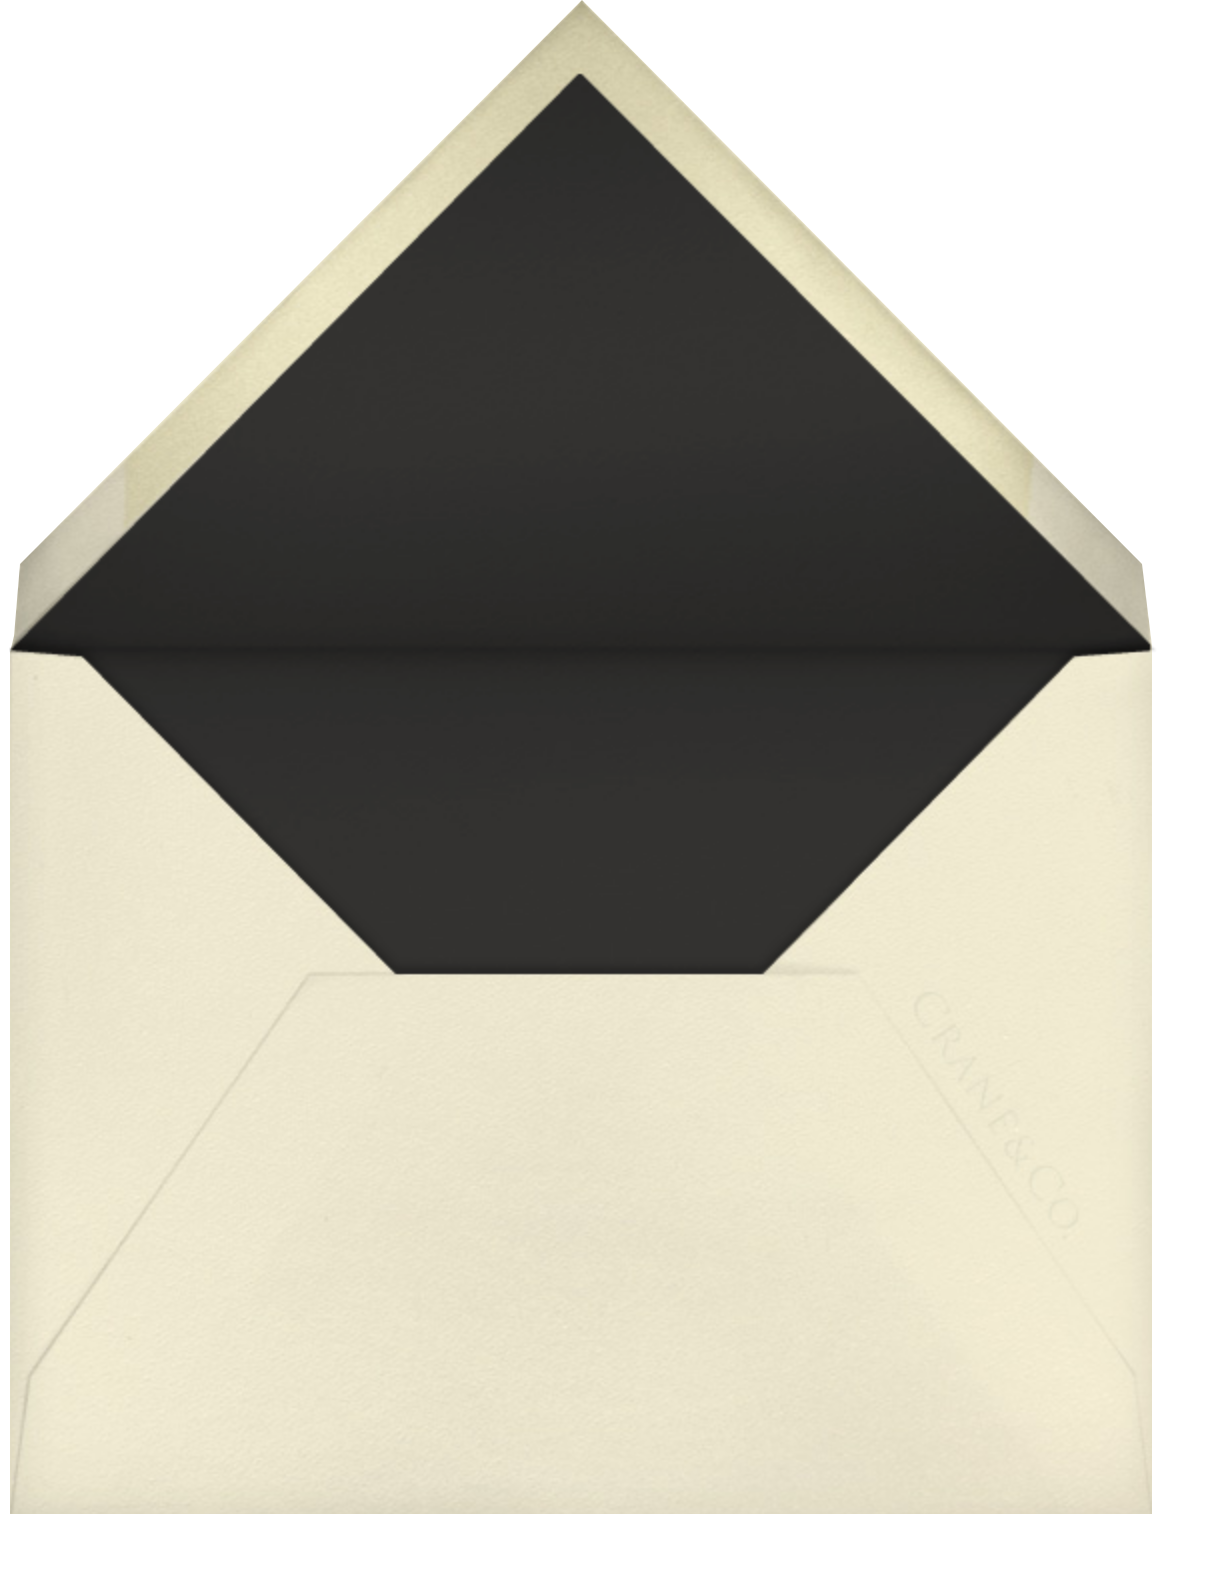 Southampton - Ecru - Paperless Post - Personalized stationery - envelope back